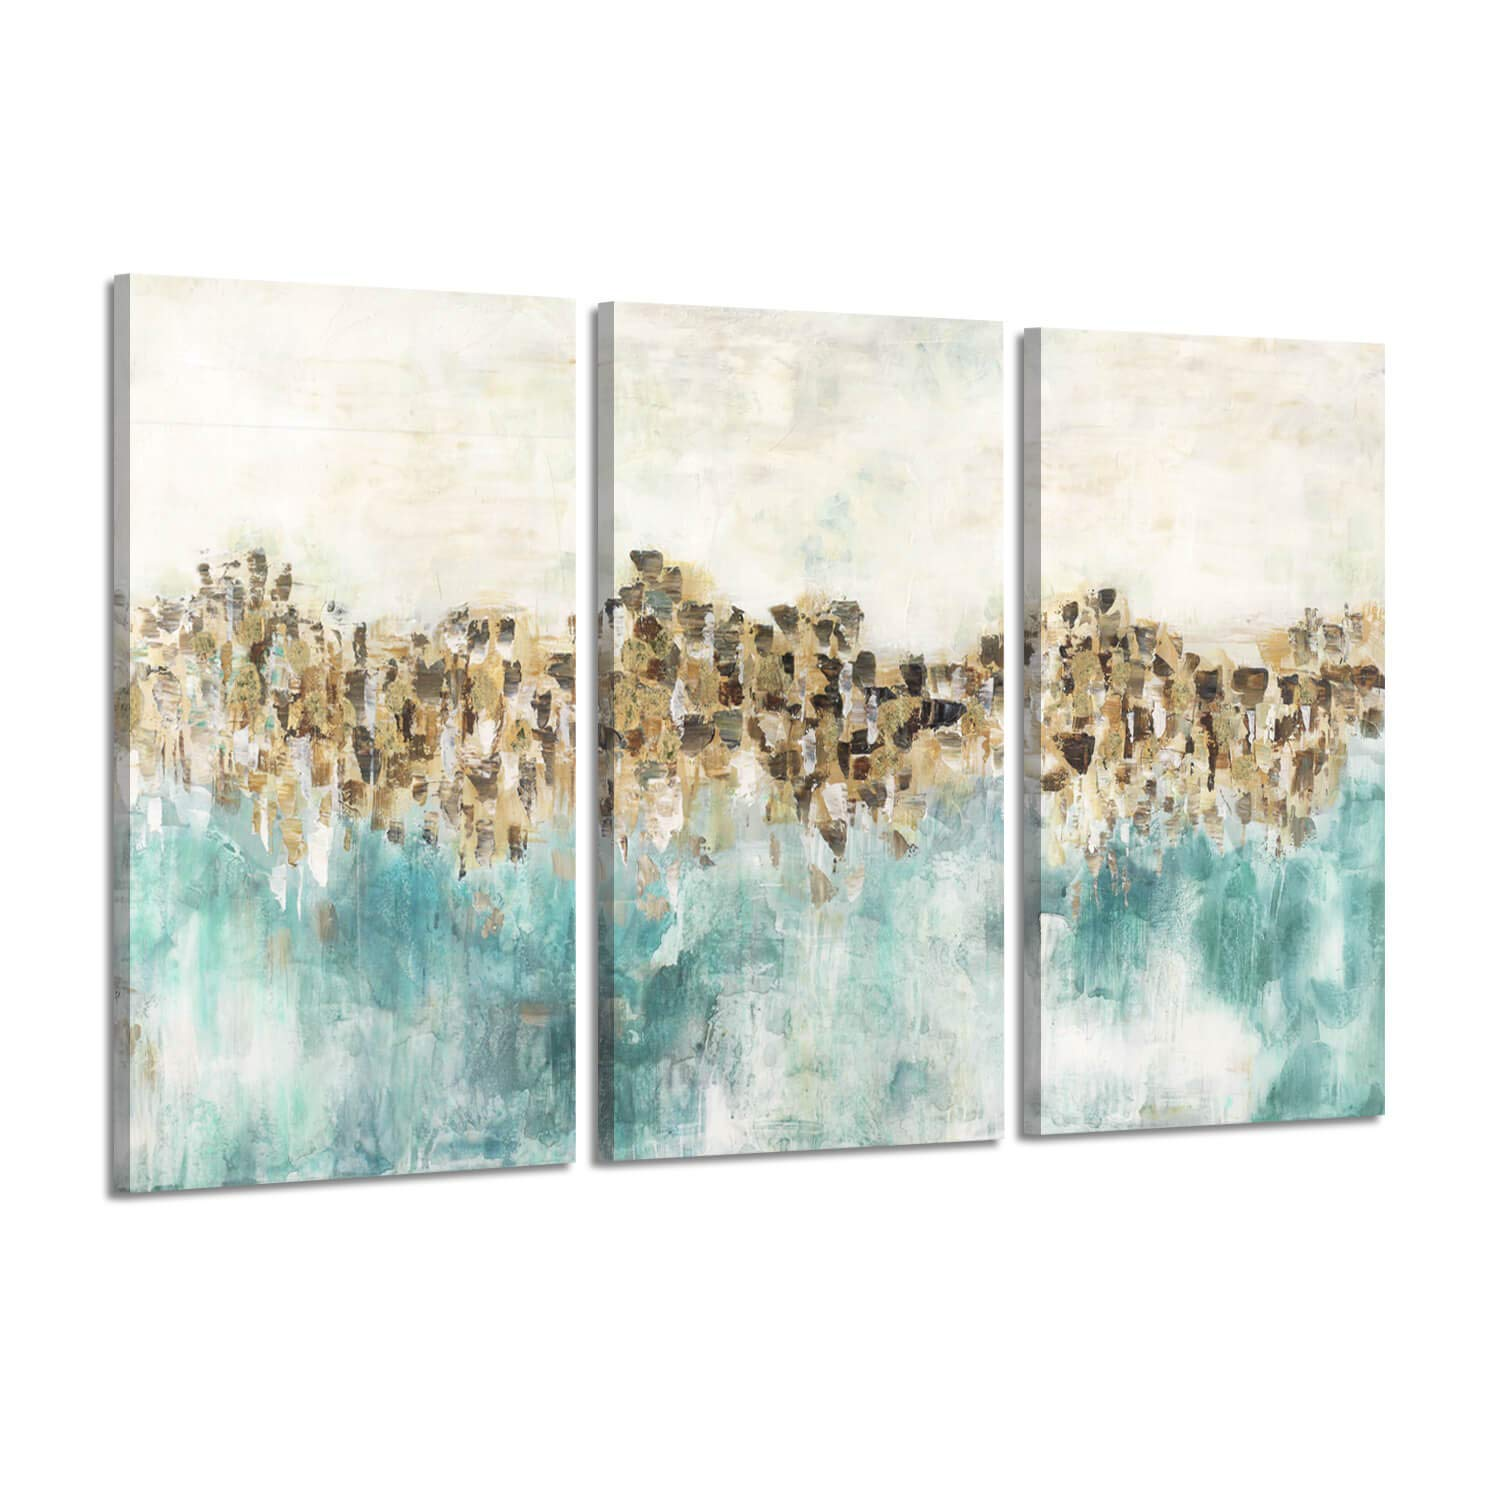 Hardy Gallery Abstract Artwork Rustic Art Picture- Farm Field Painting Print on Canvas for Wall Decor